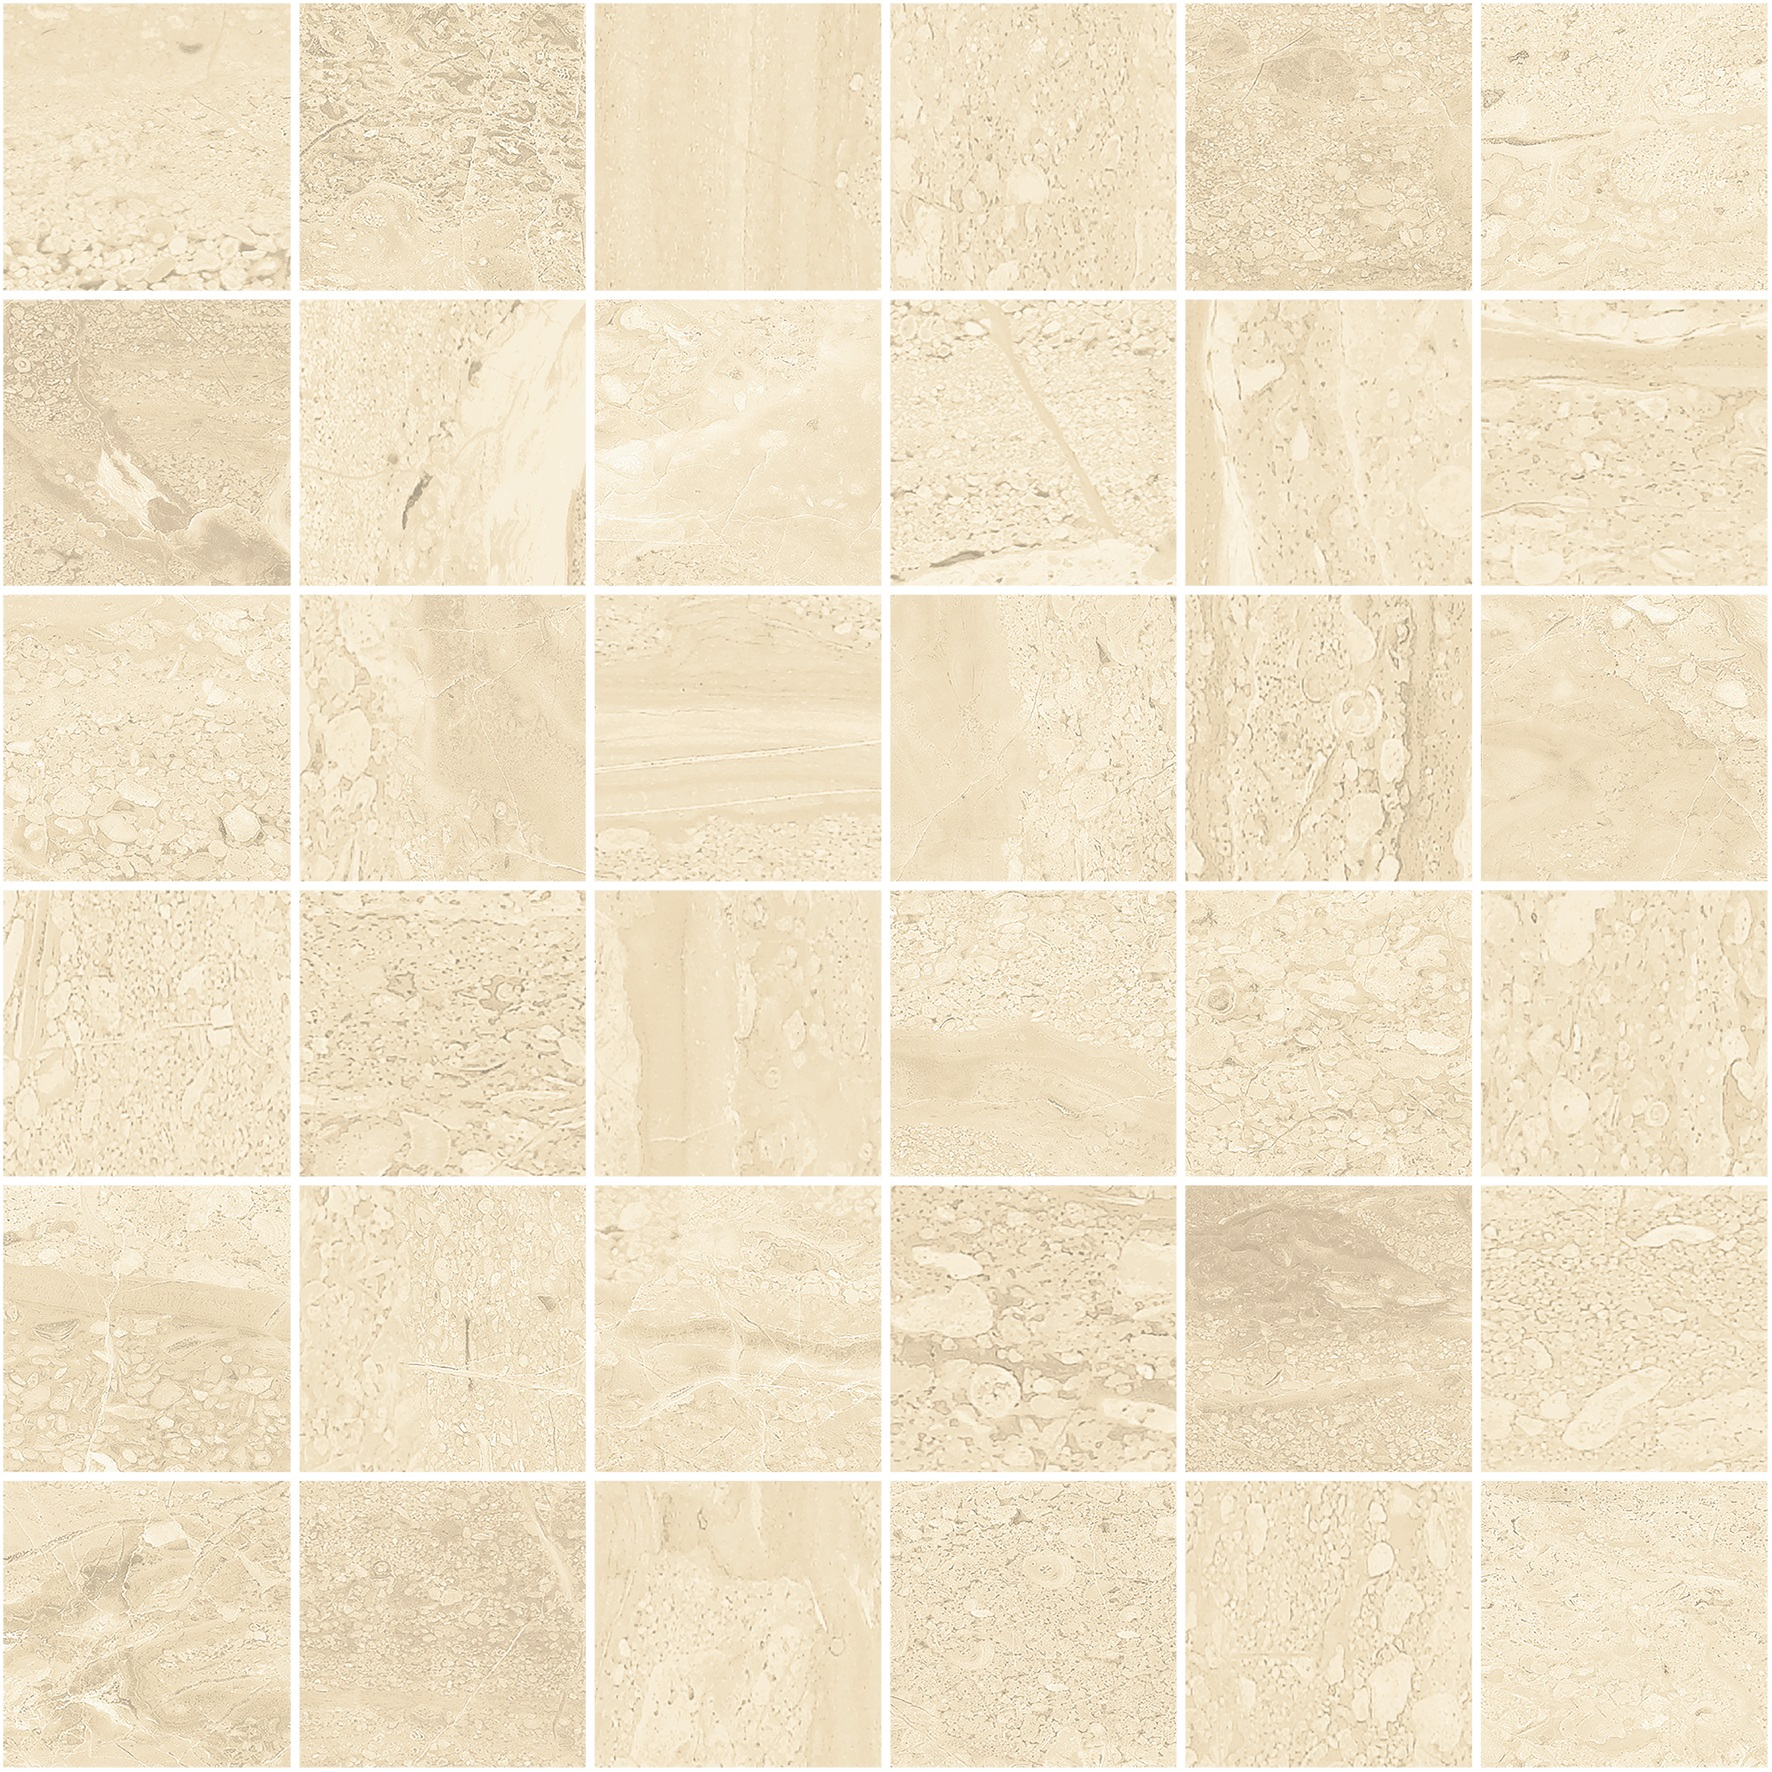 Floor Collection FC167 300mm x 300mm Delta Malla Beige Mosaic